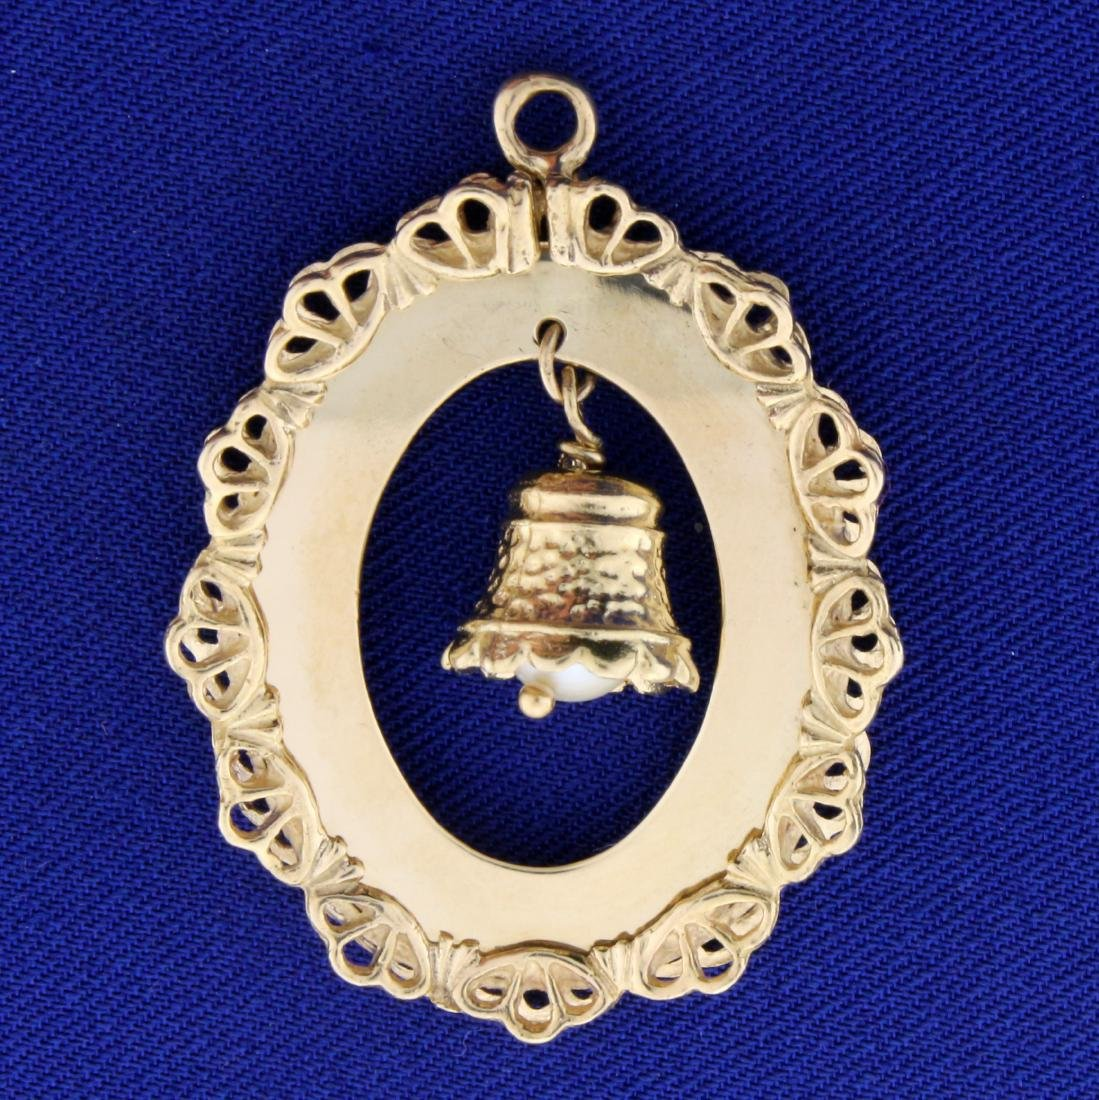 Pearl Wedding Bell Pendant or Charm in 14K Yellow Gold - 2